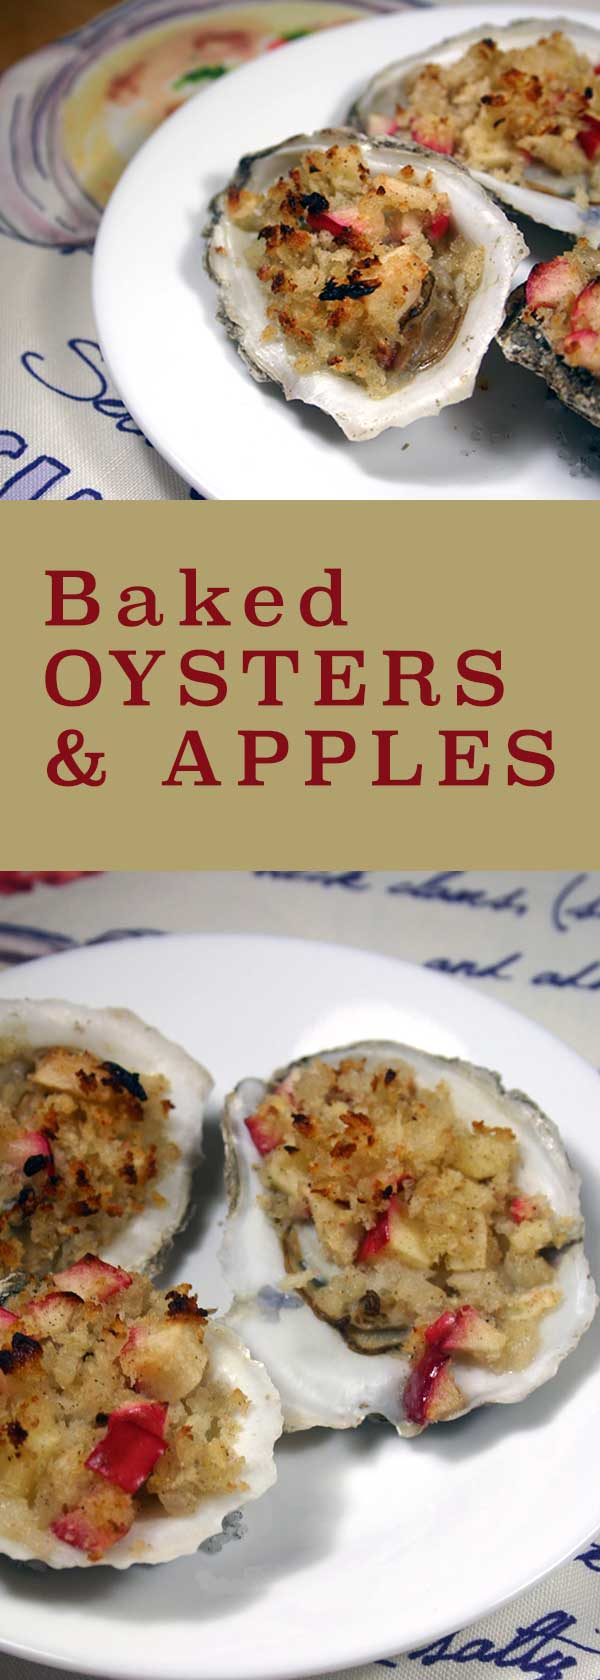 Baked Oysters & Apples | diabeticfoodie.com